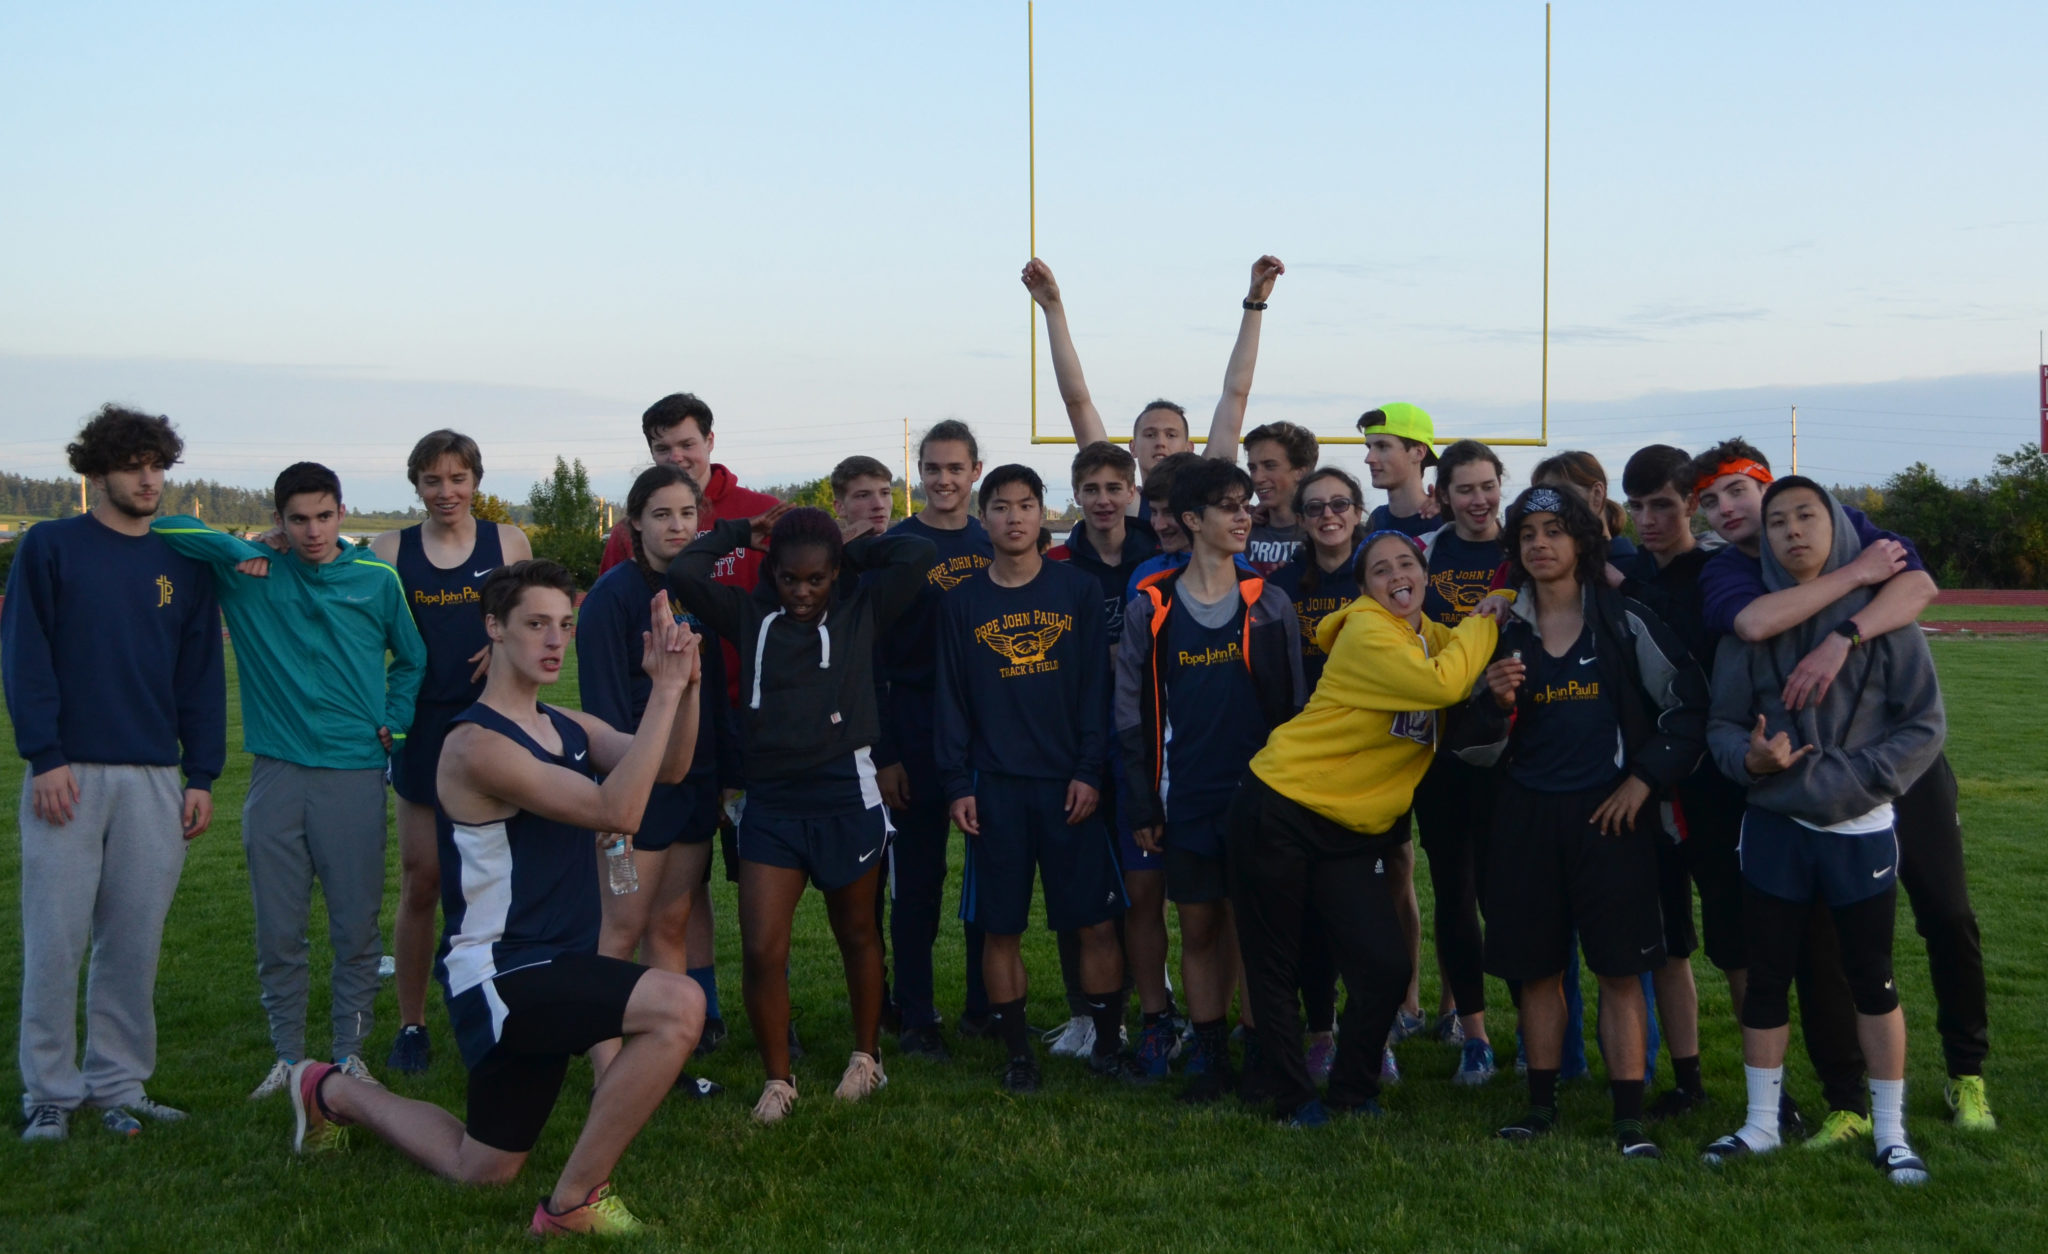 Pope John Paul II High School Finds Success with New Track